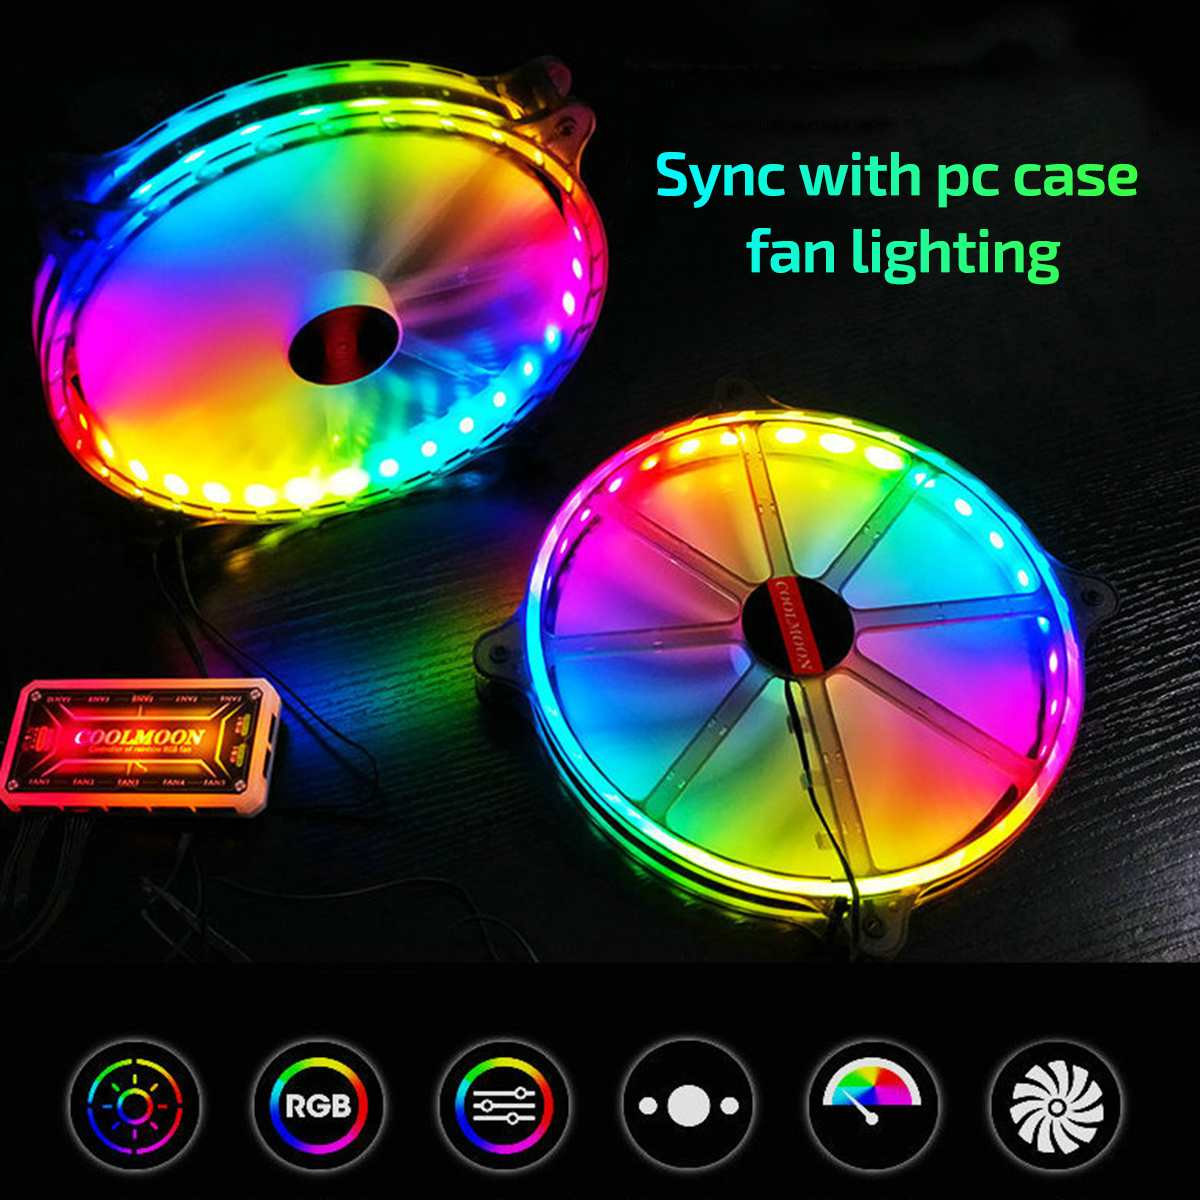 200mm Computer Cooler Cooling Fan 12V 6PIN Quiet Adjustable LED RGB Fan SYNC PC Case Cooler CPU Cooler Fan IR Remote Control